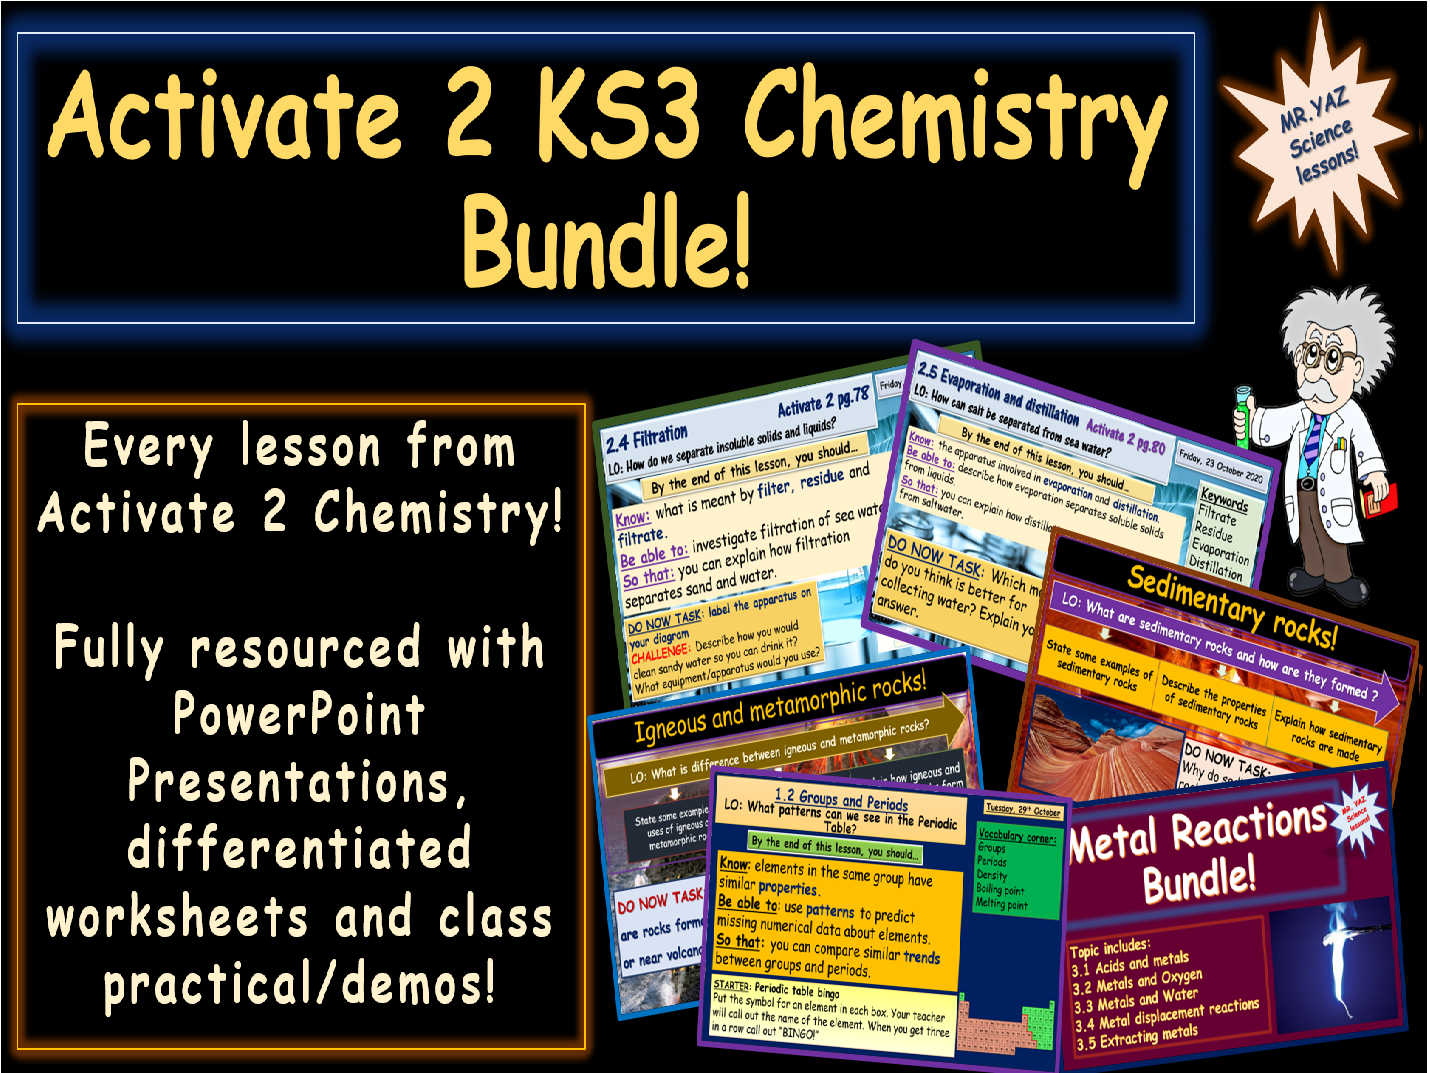 Activate 2 KS3 Chemistry bundle